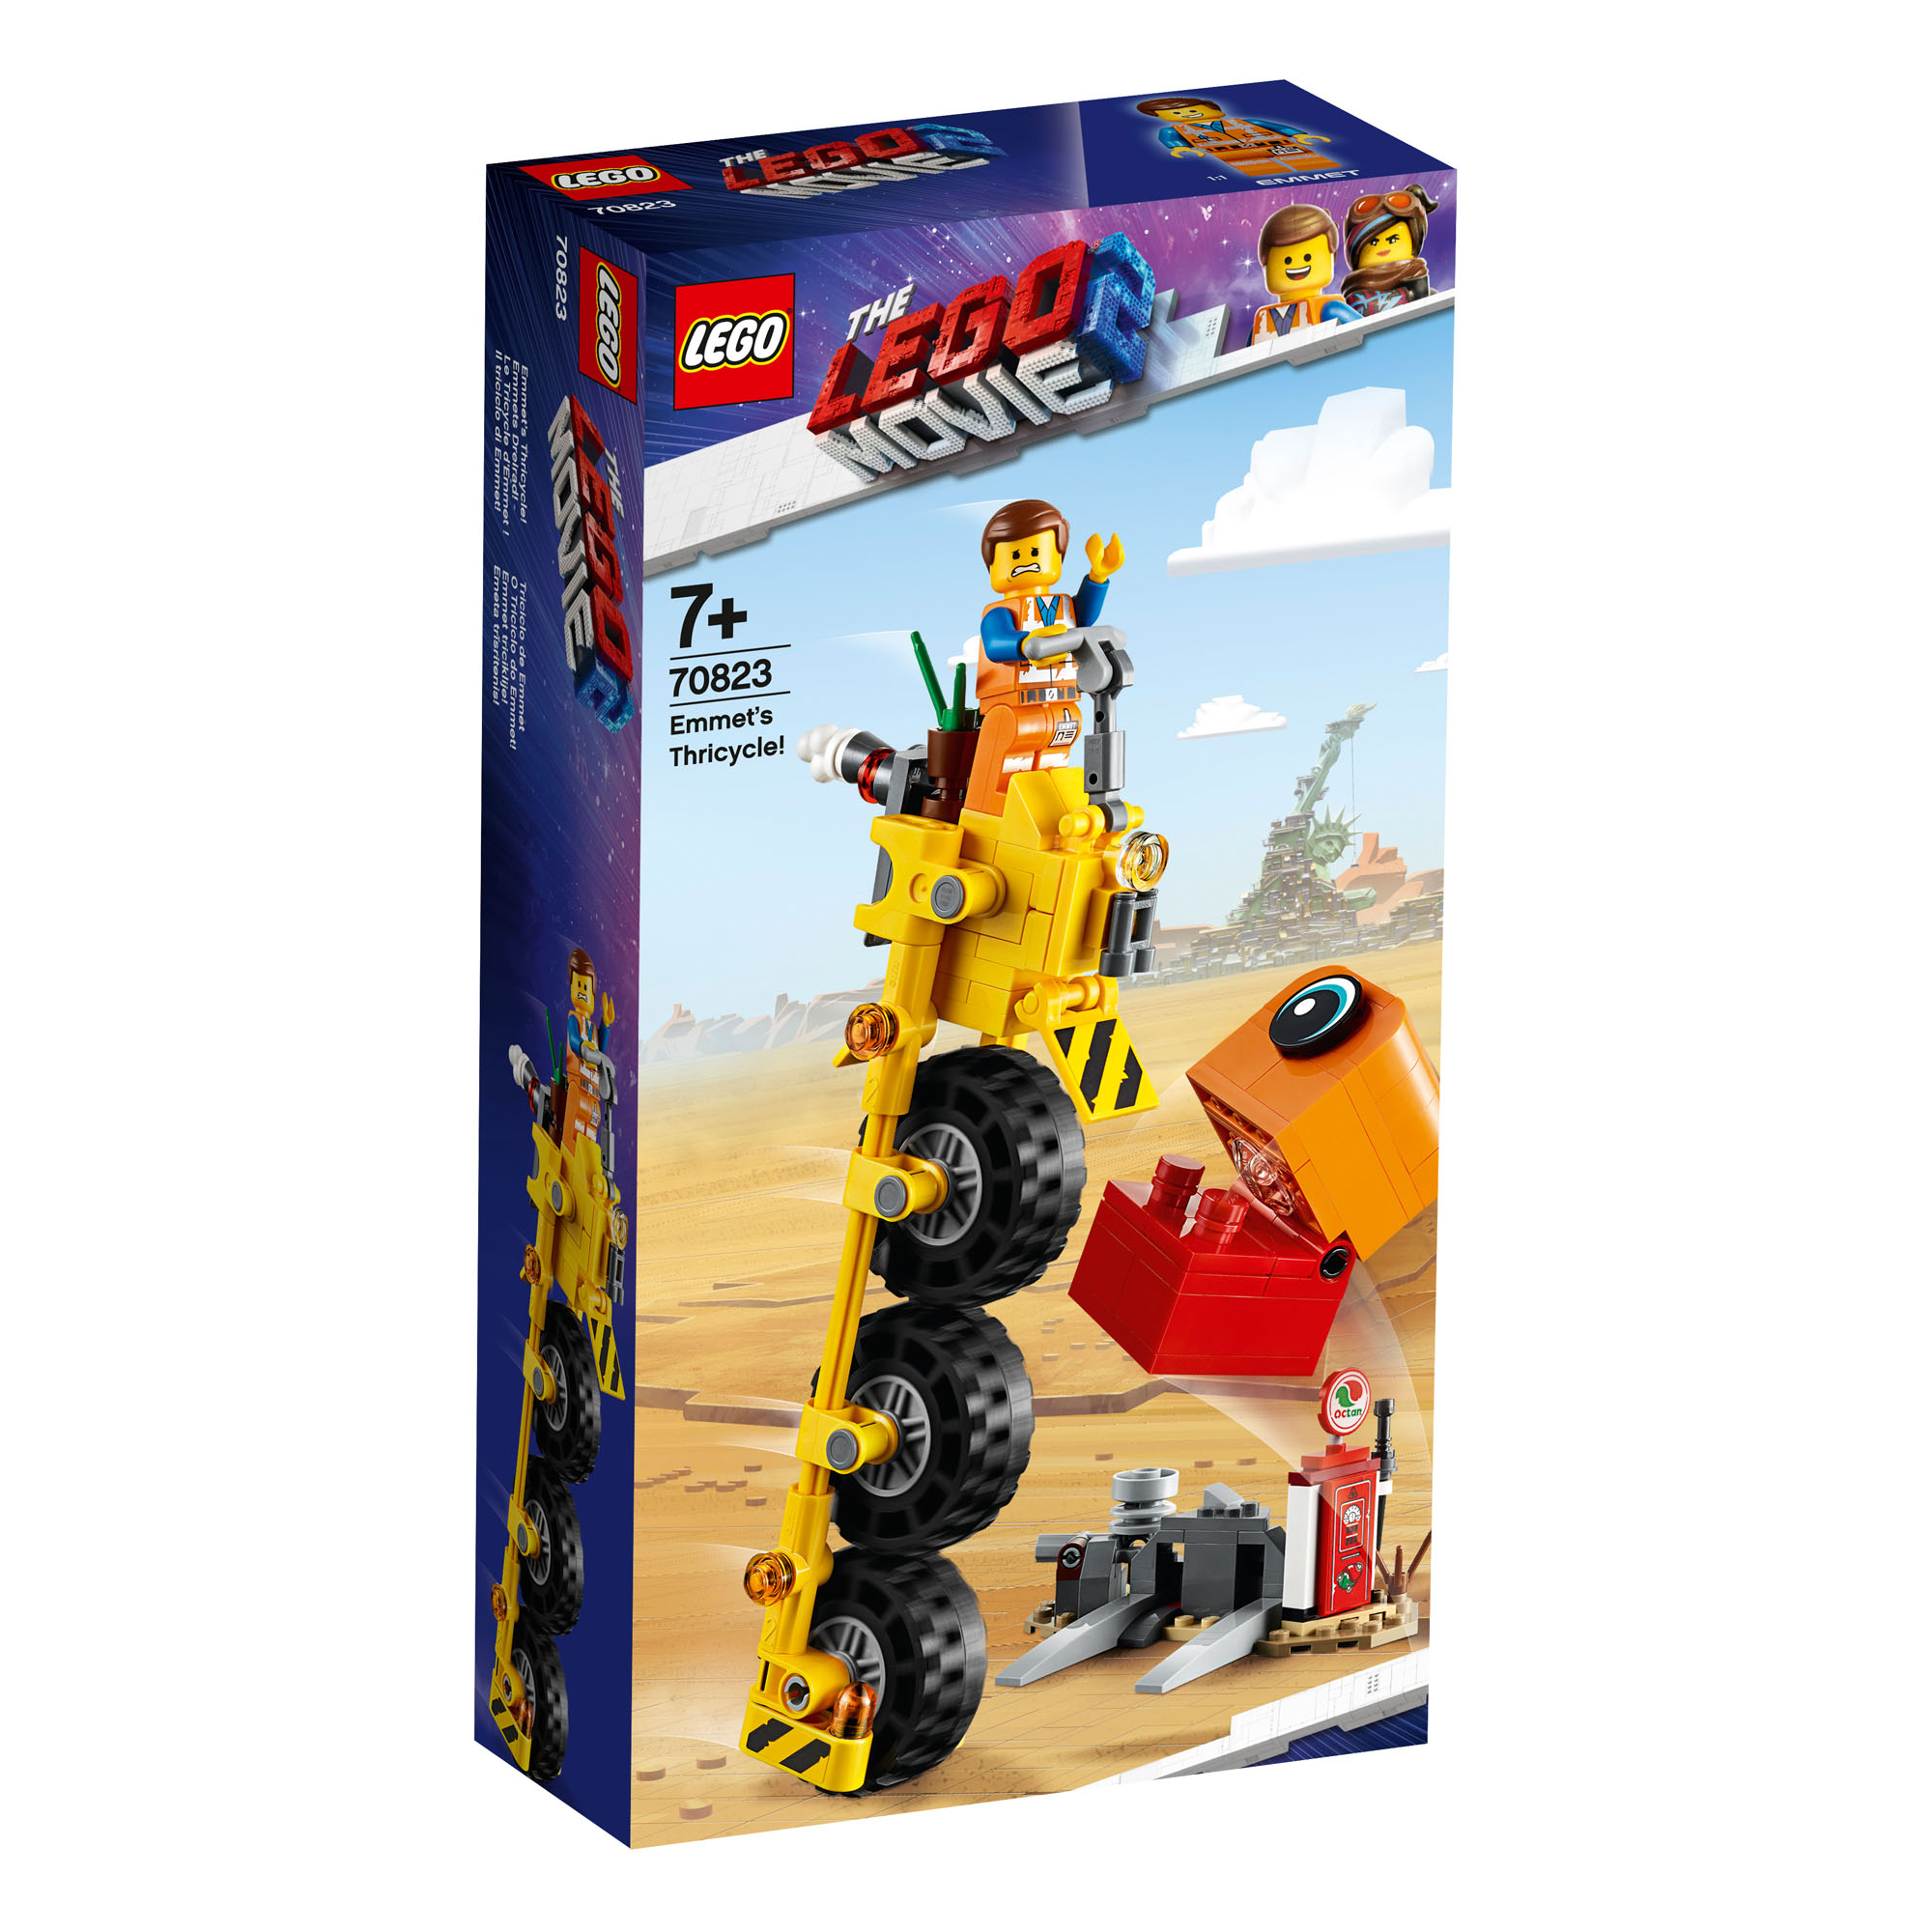 Details about 70823 LEGO The LEGO Movie Emmet's Thricycle! 174 Pieces Age  7+ New Release 2019!